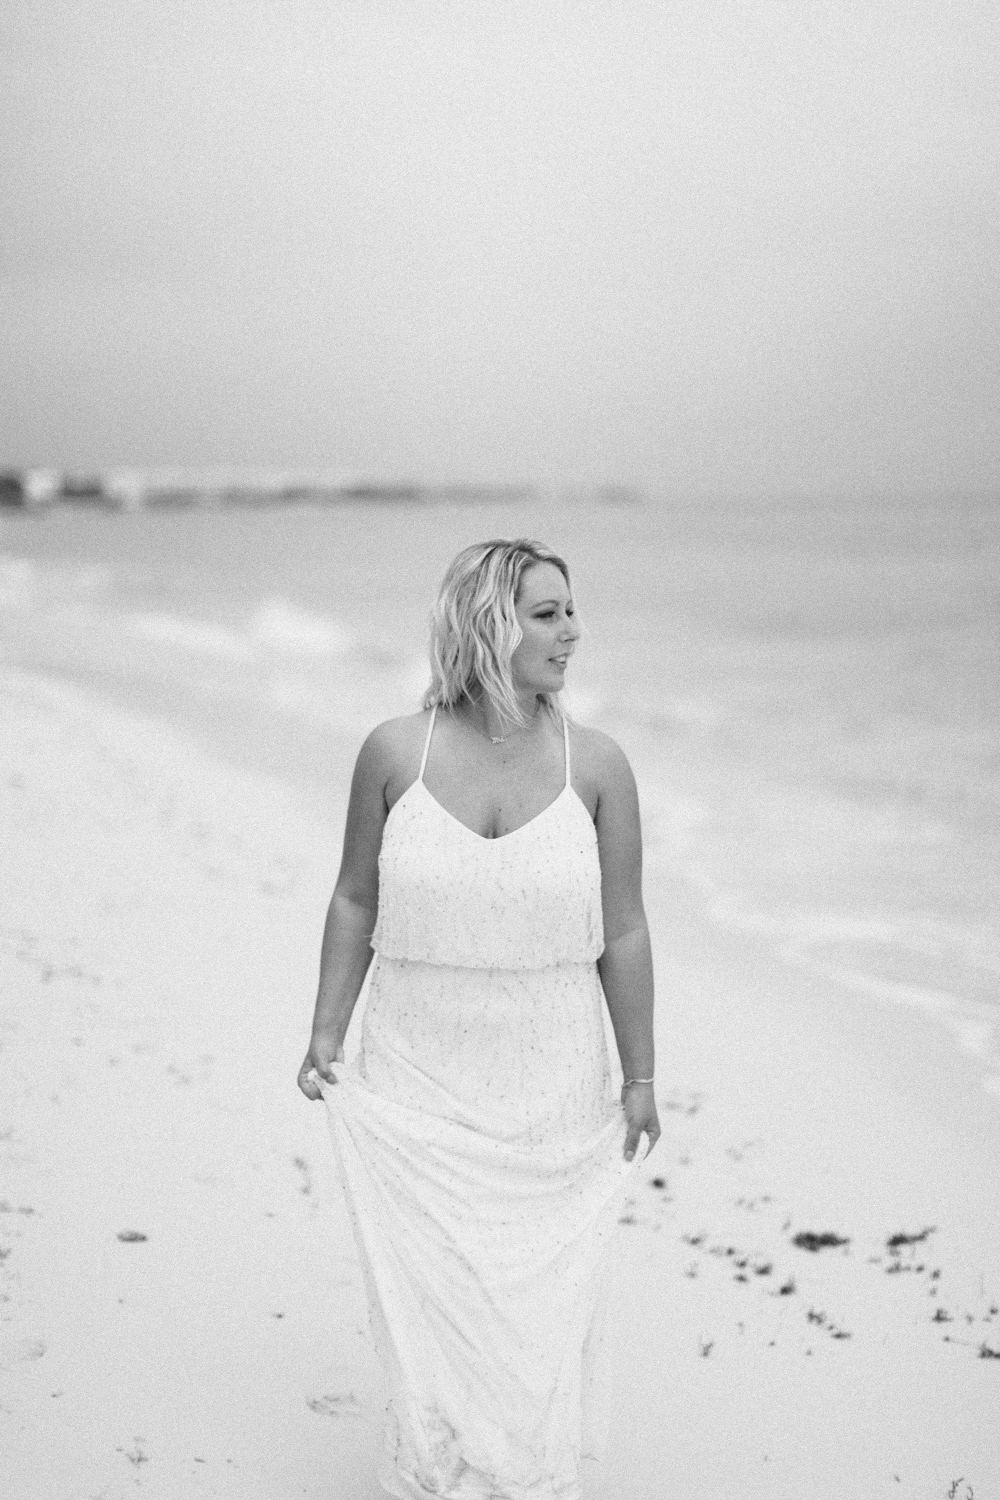 MichaelLiedtke_Destination_Wedding_Photographer_ClaireTyler_21.jpg